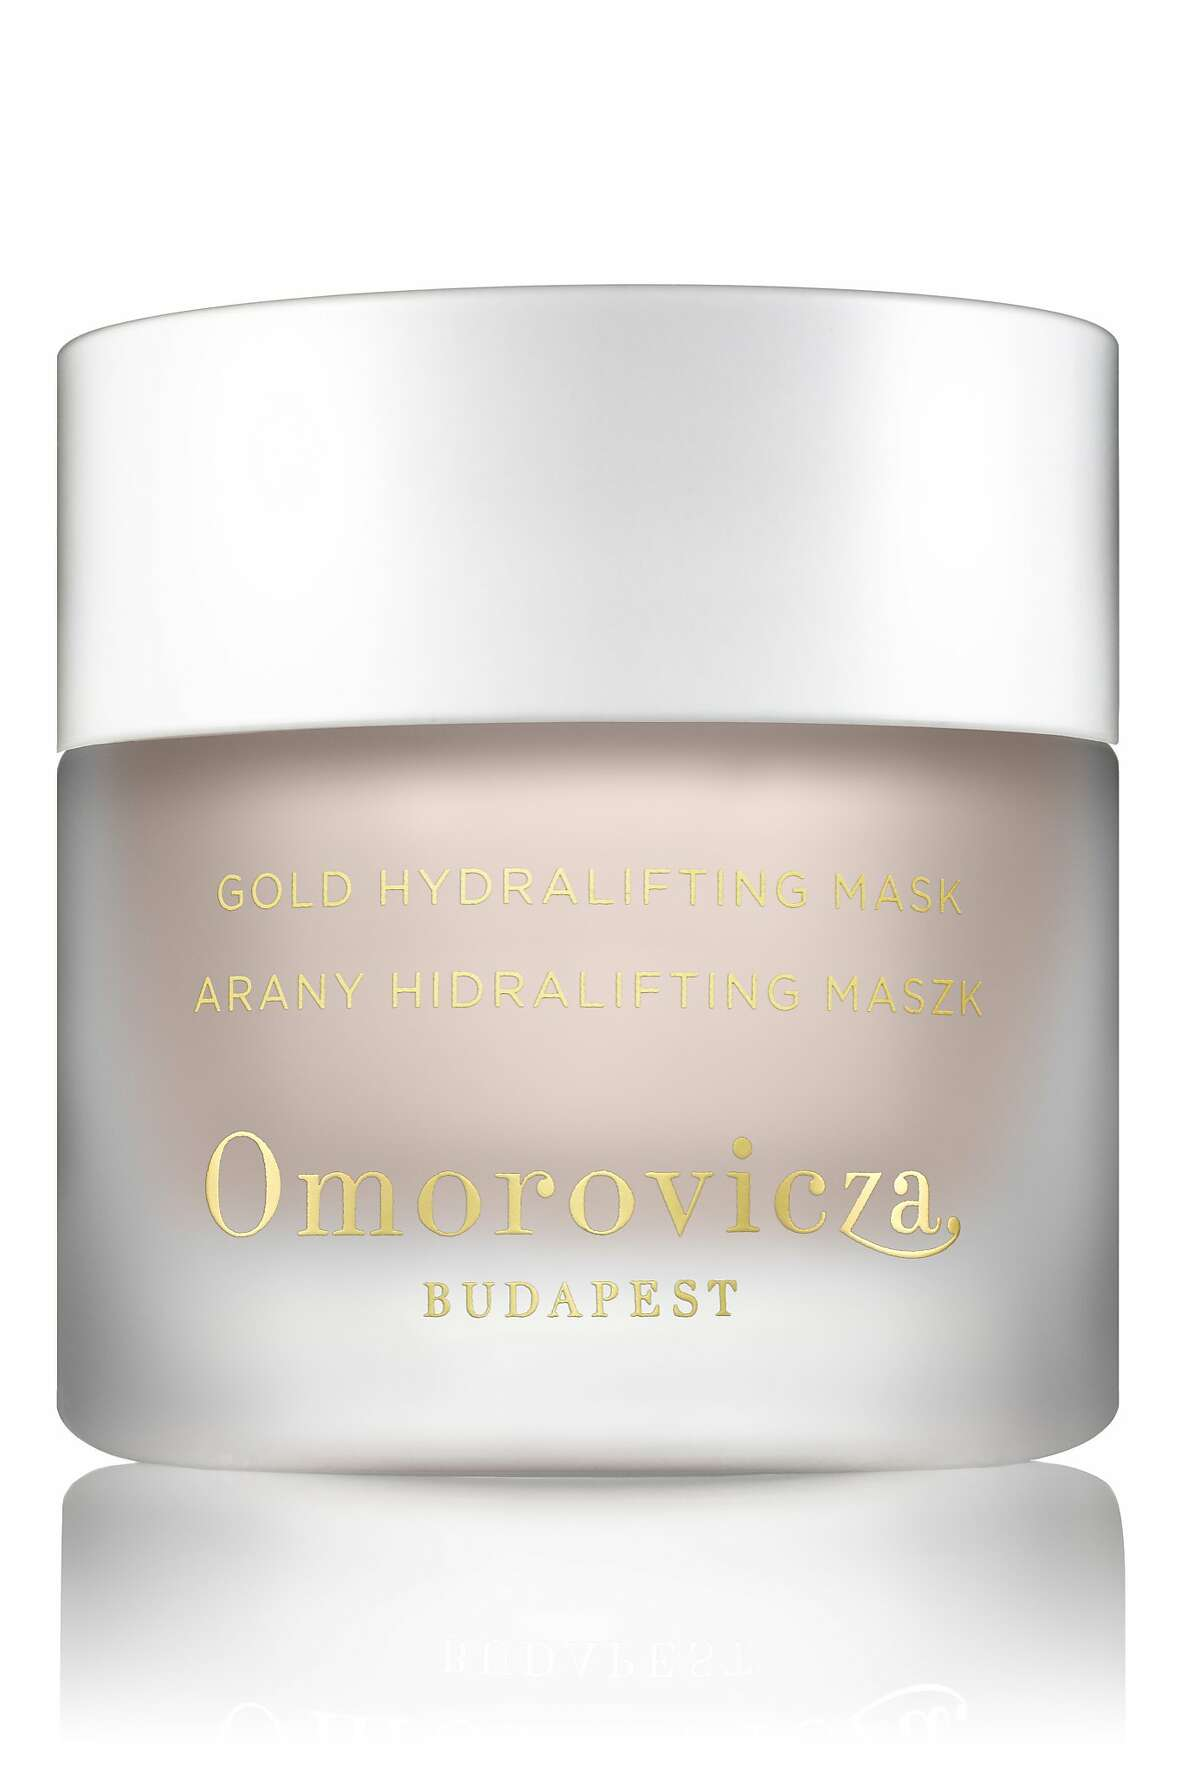 Omorovicza Gold Hydralifting Mask. $185. Sold at Neiman Marcus and omorovicza.com.